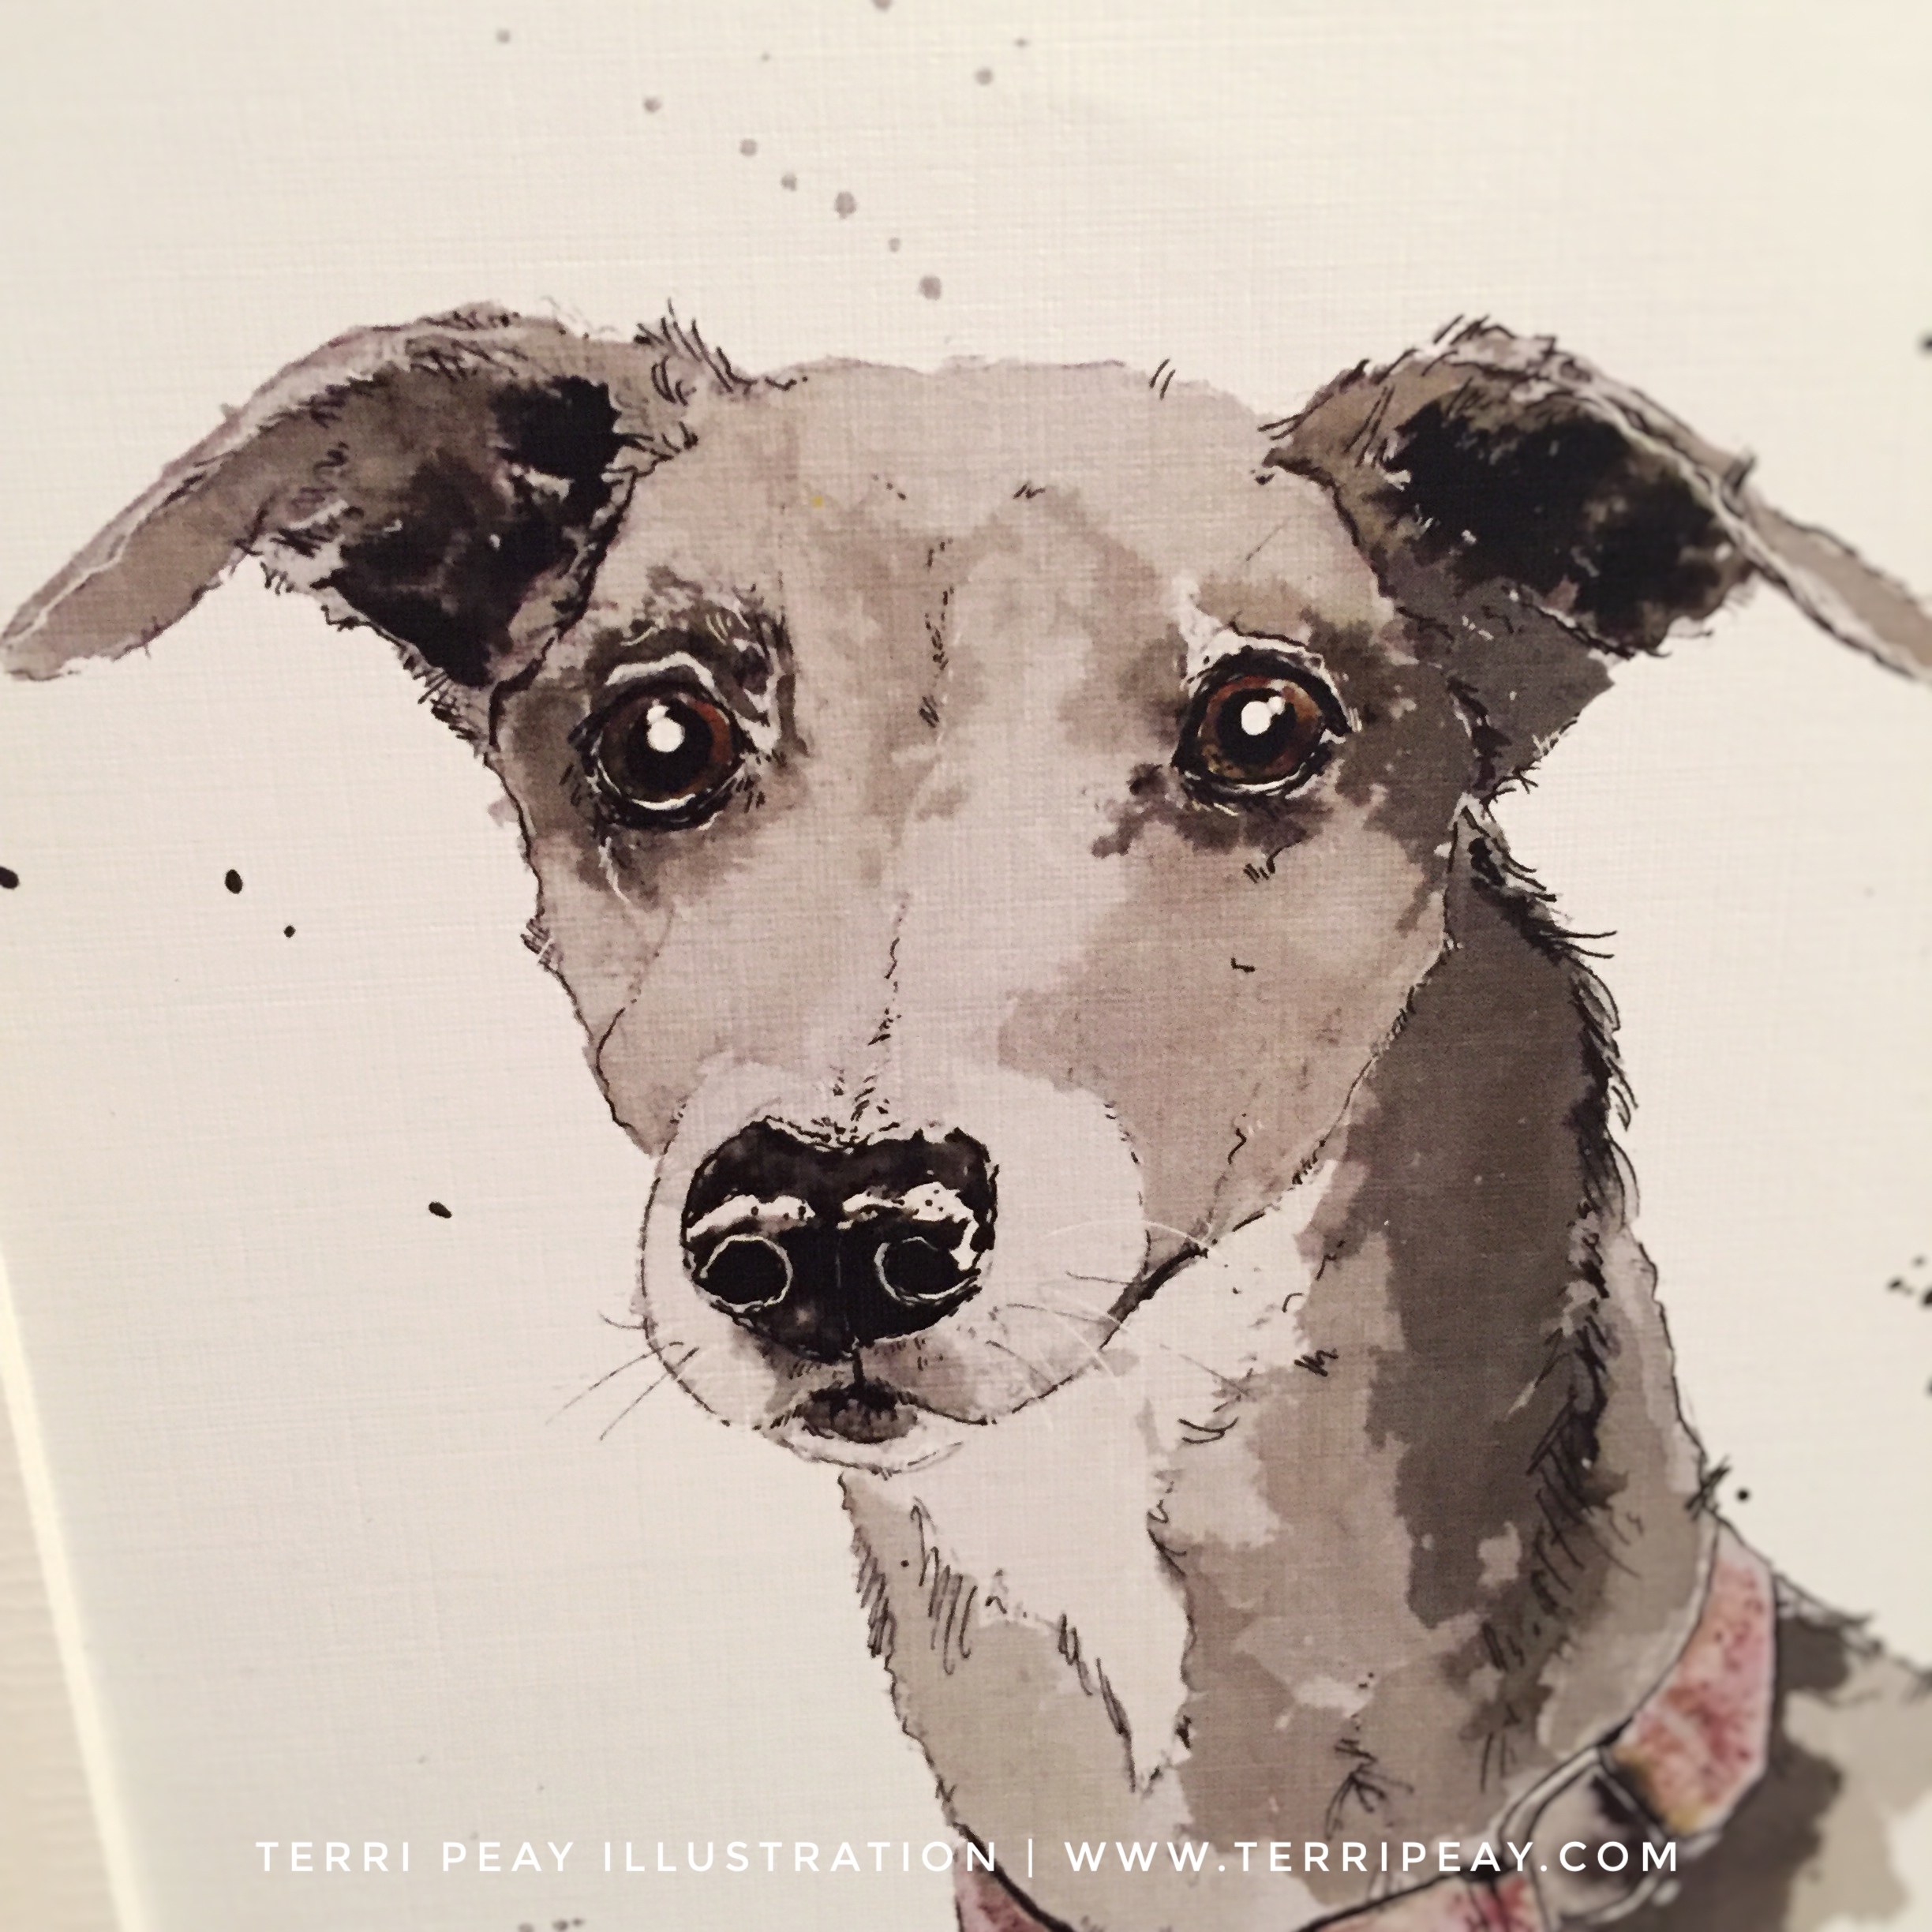 'Bella' By Terri Peay